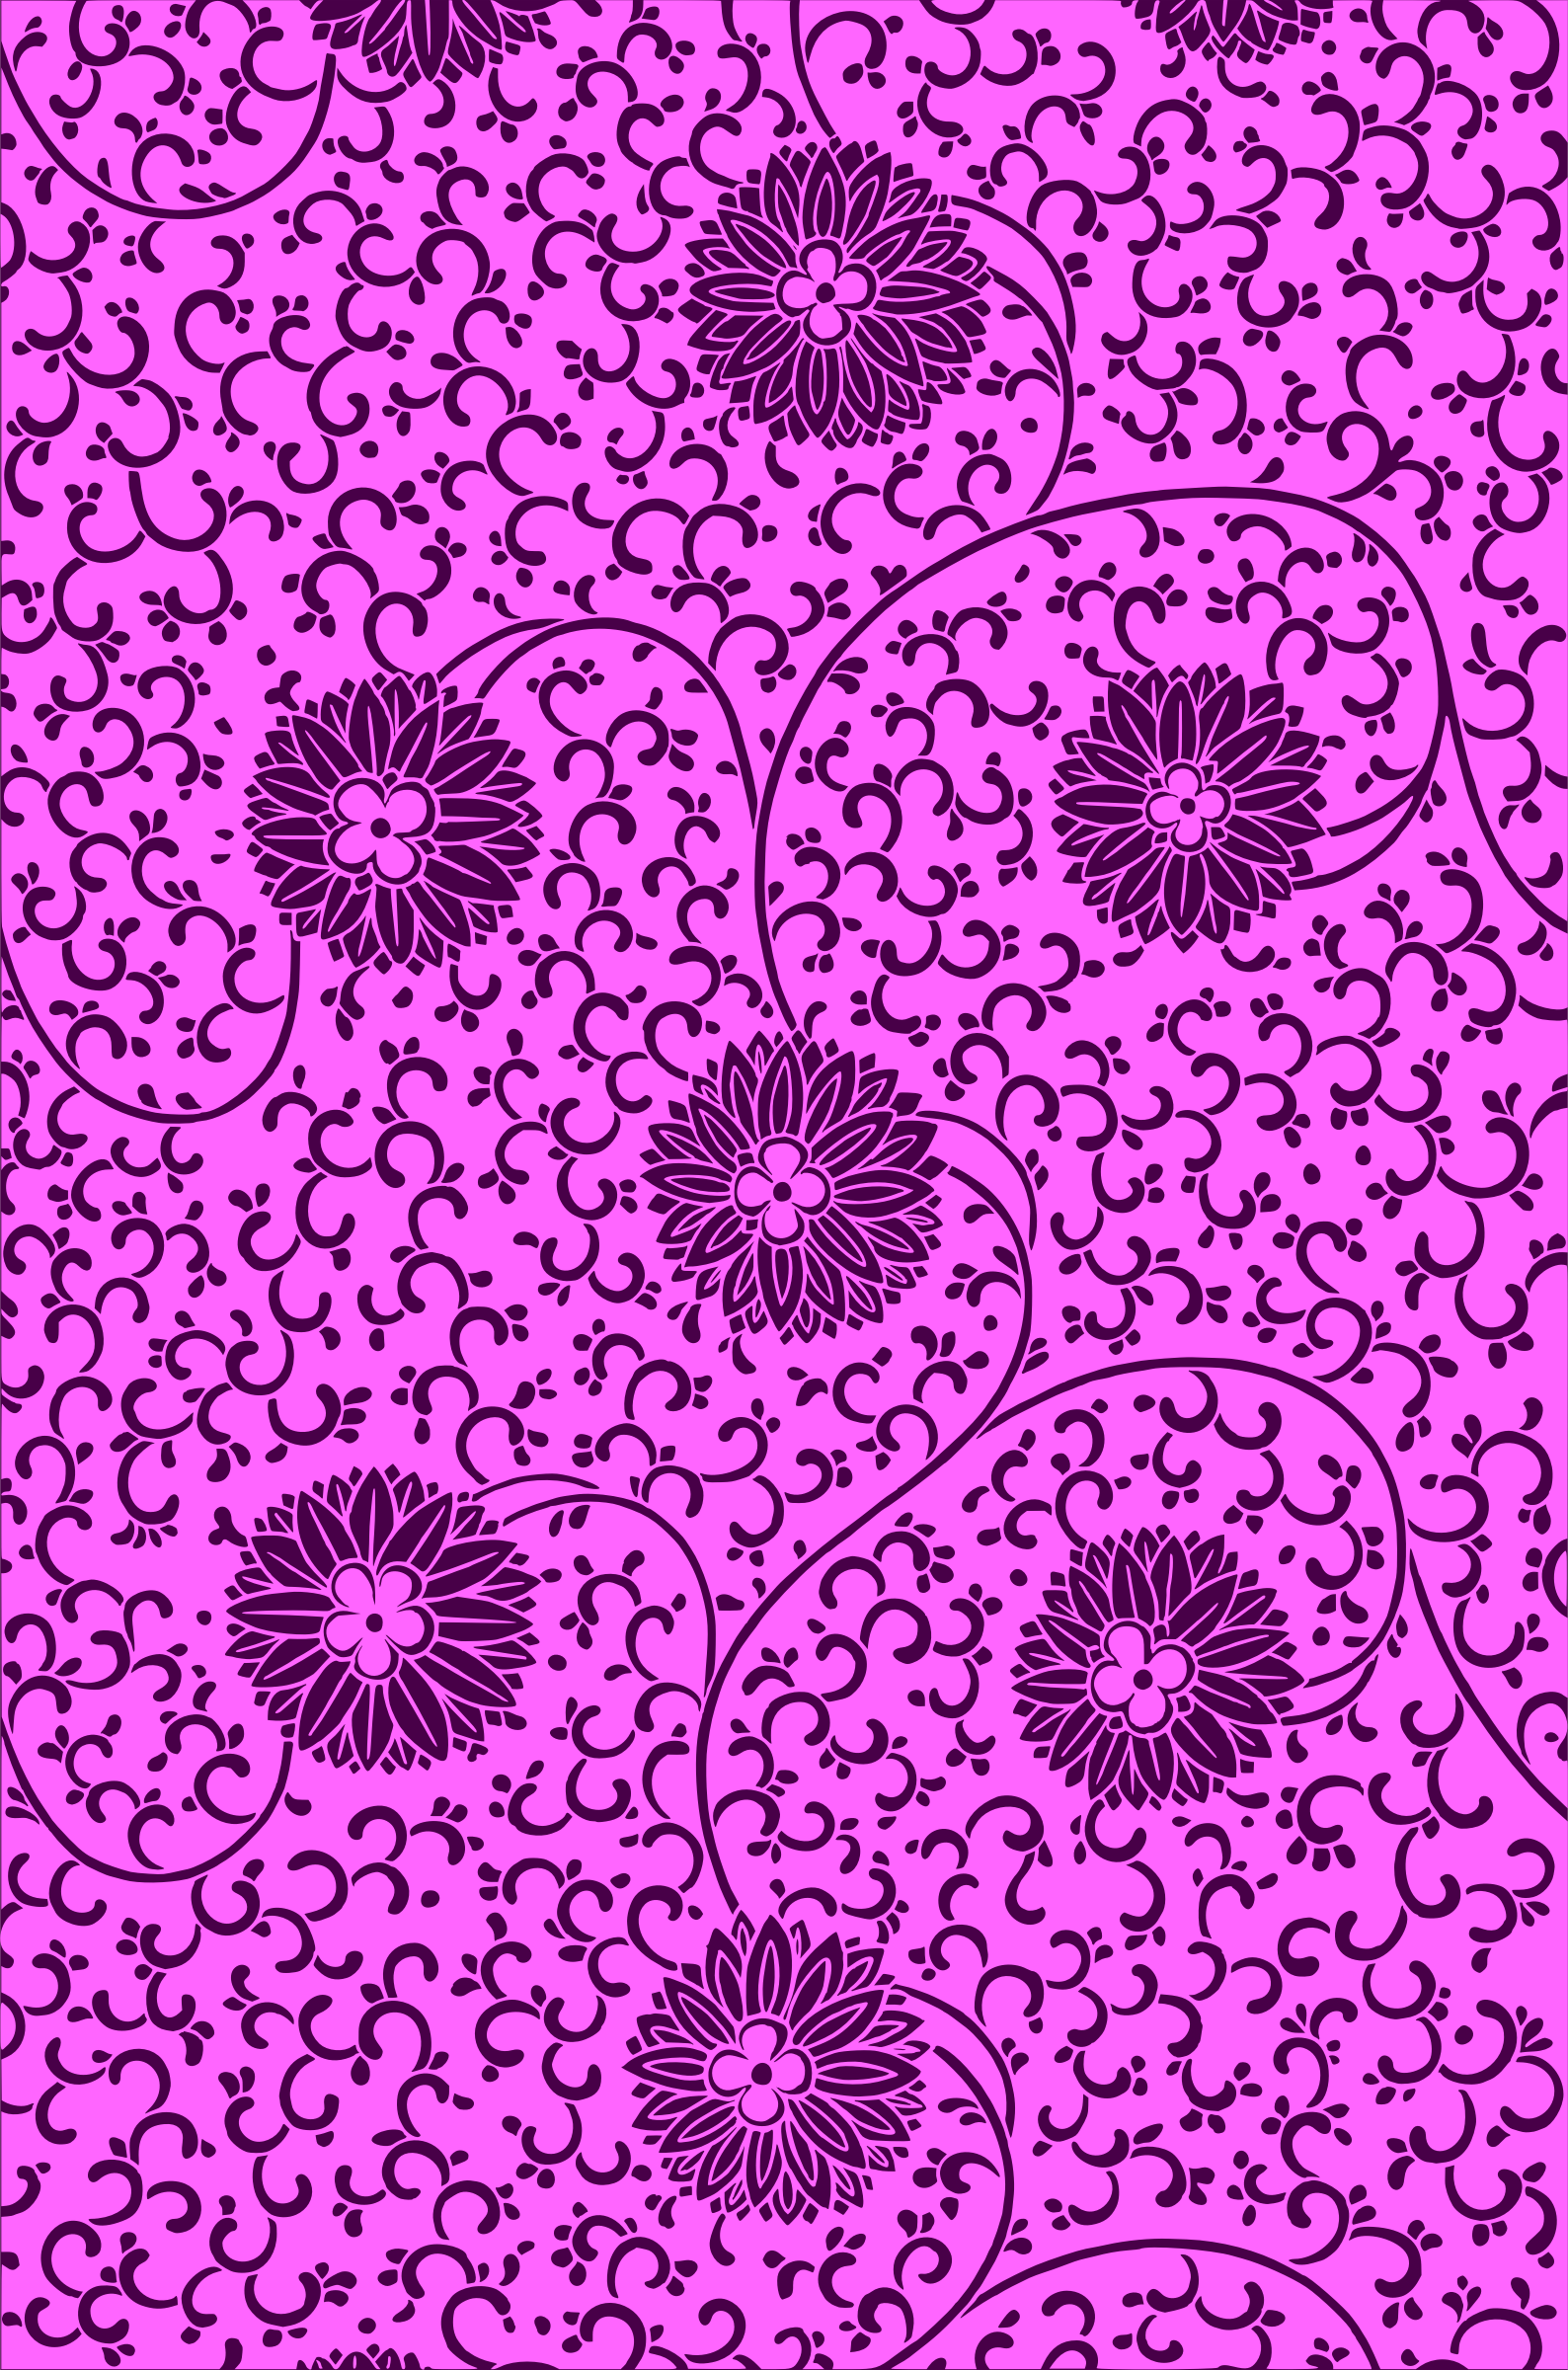 Floral pattern 2 (colour 6) by Firkin